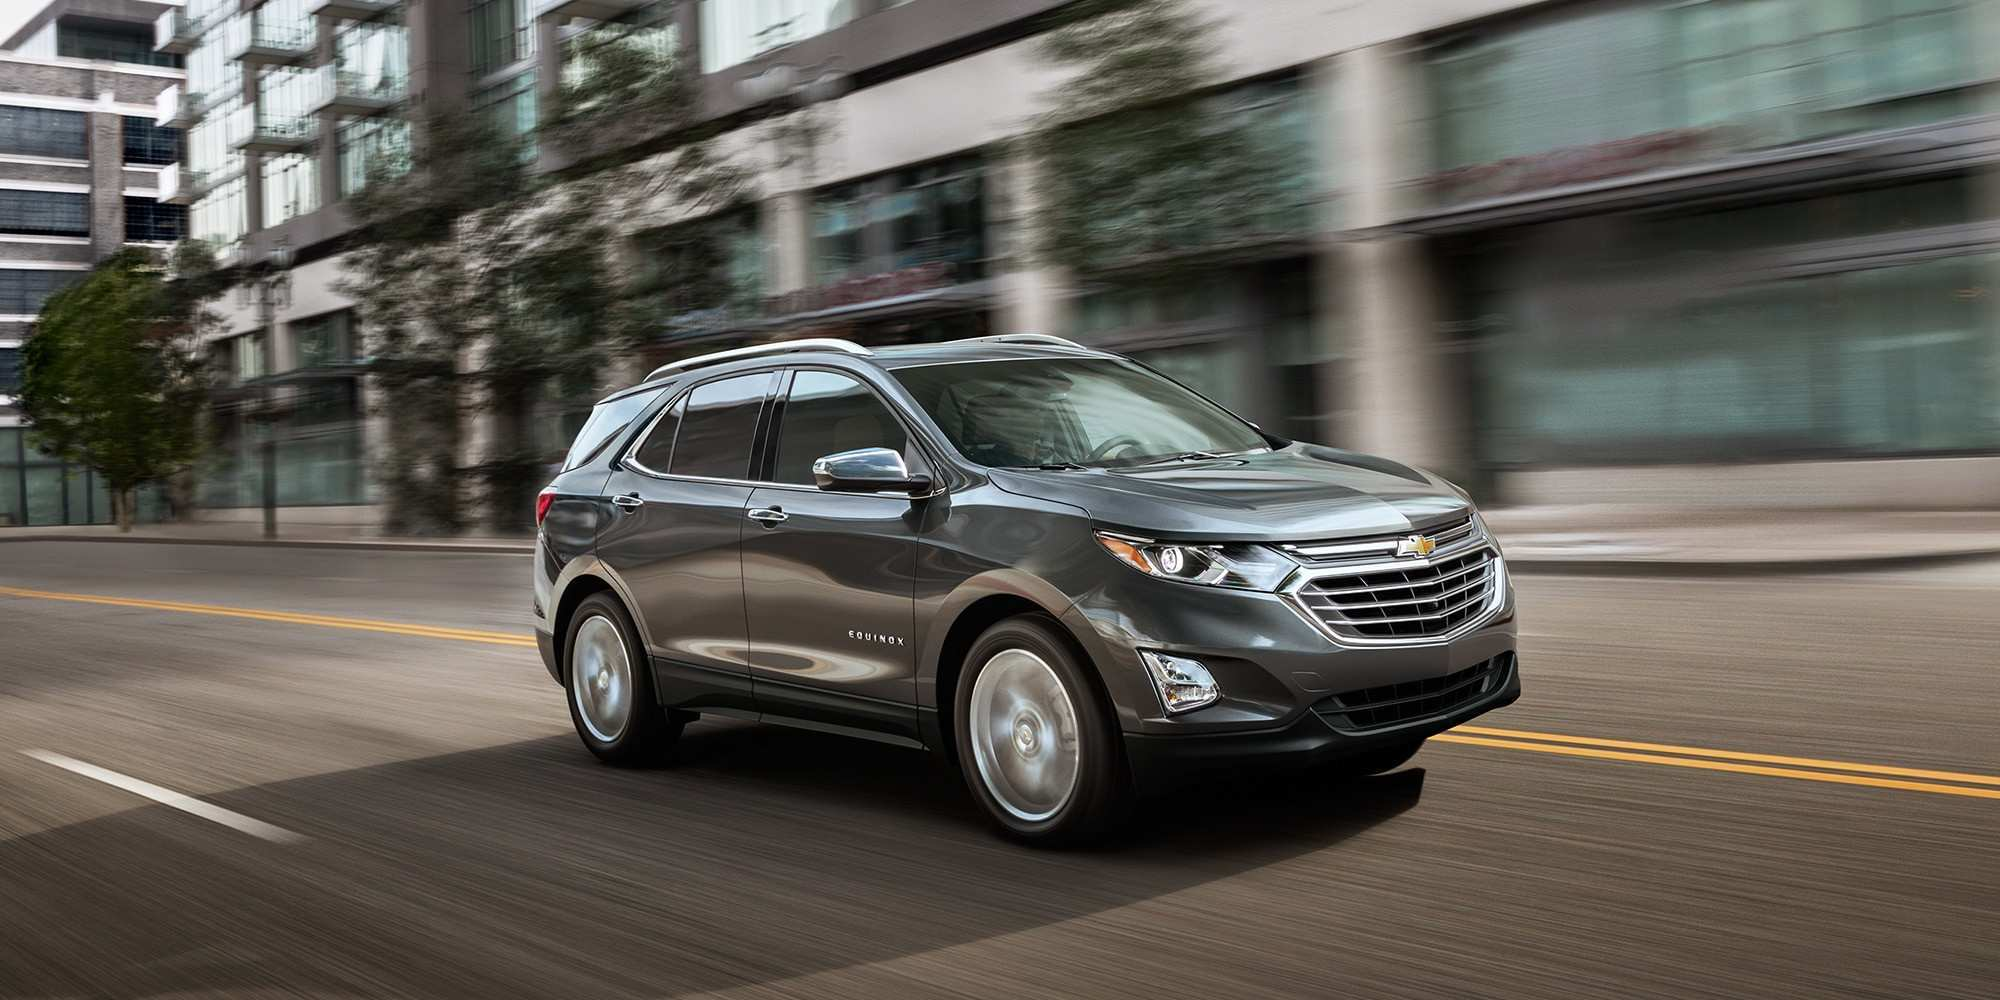 36 The Best 2020 Chevrolet Equinox Price And Release Date